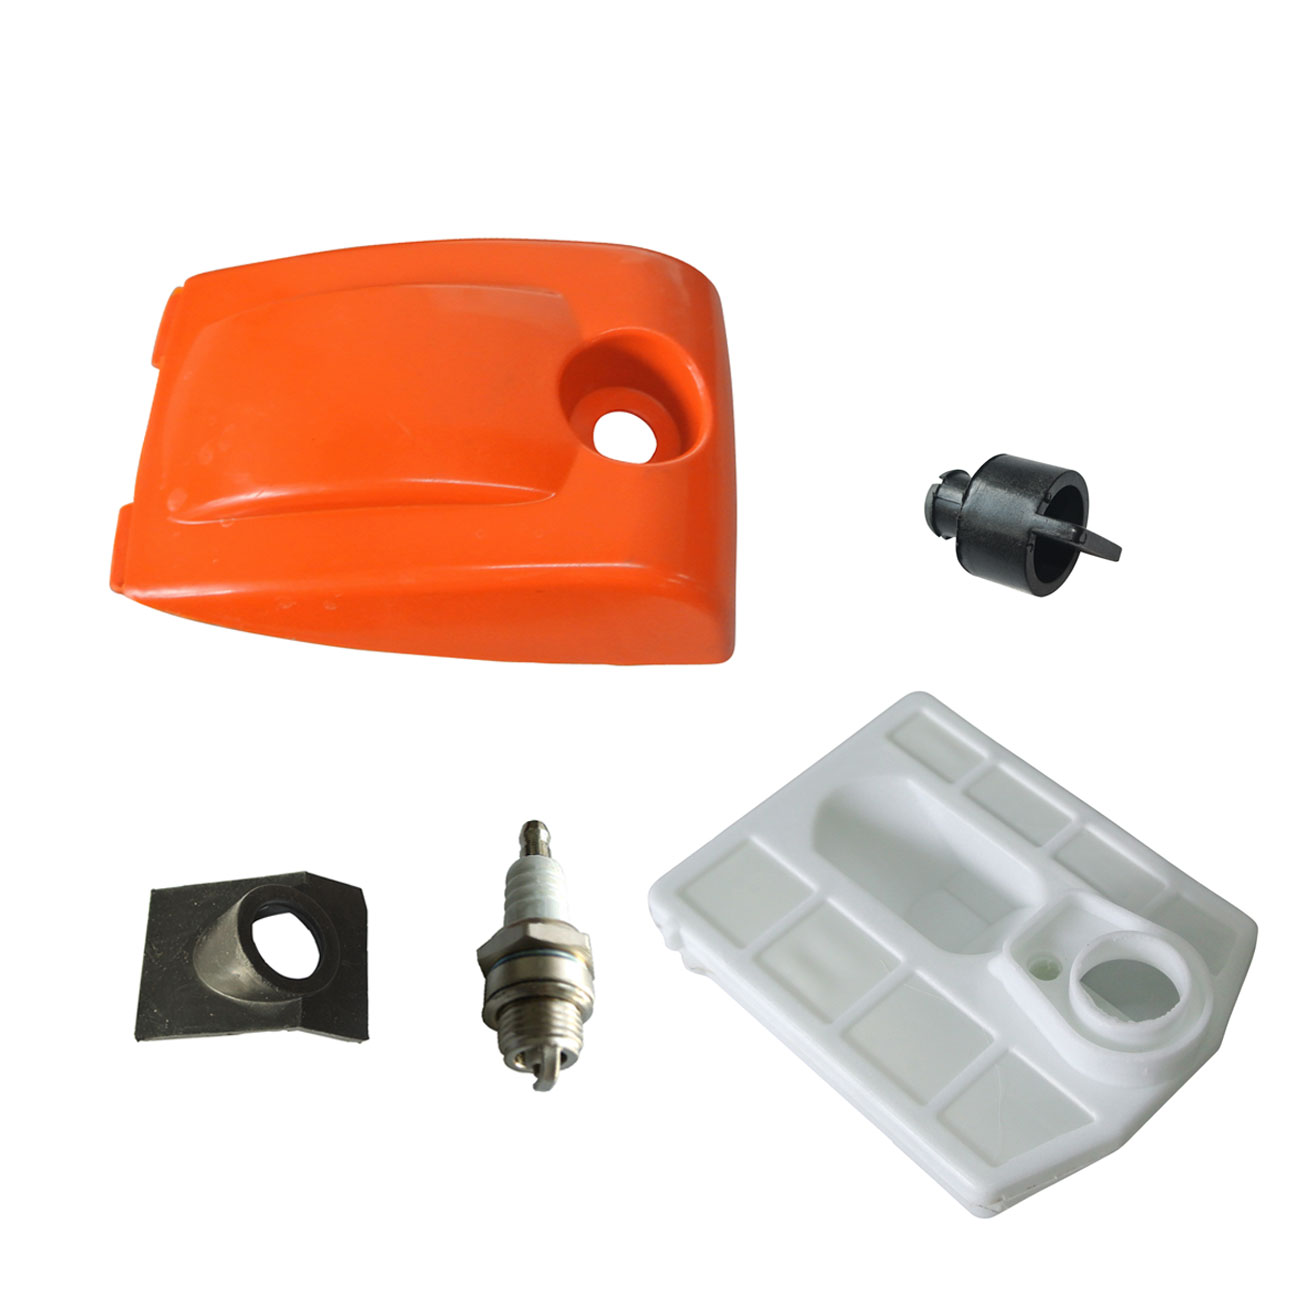 New Air Filter & Filter Cover & Spark Plug For Chinese Chainsaw 4500 5200 5800